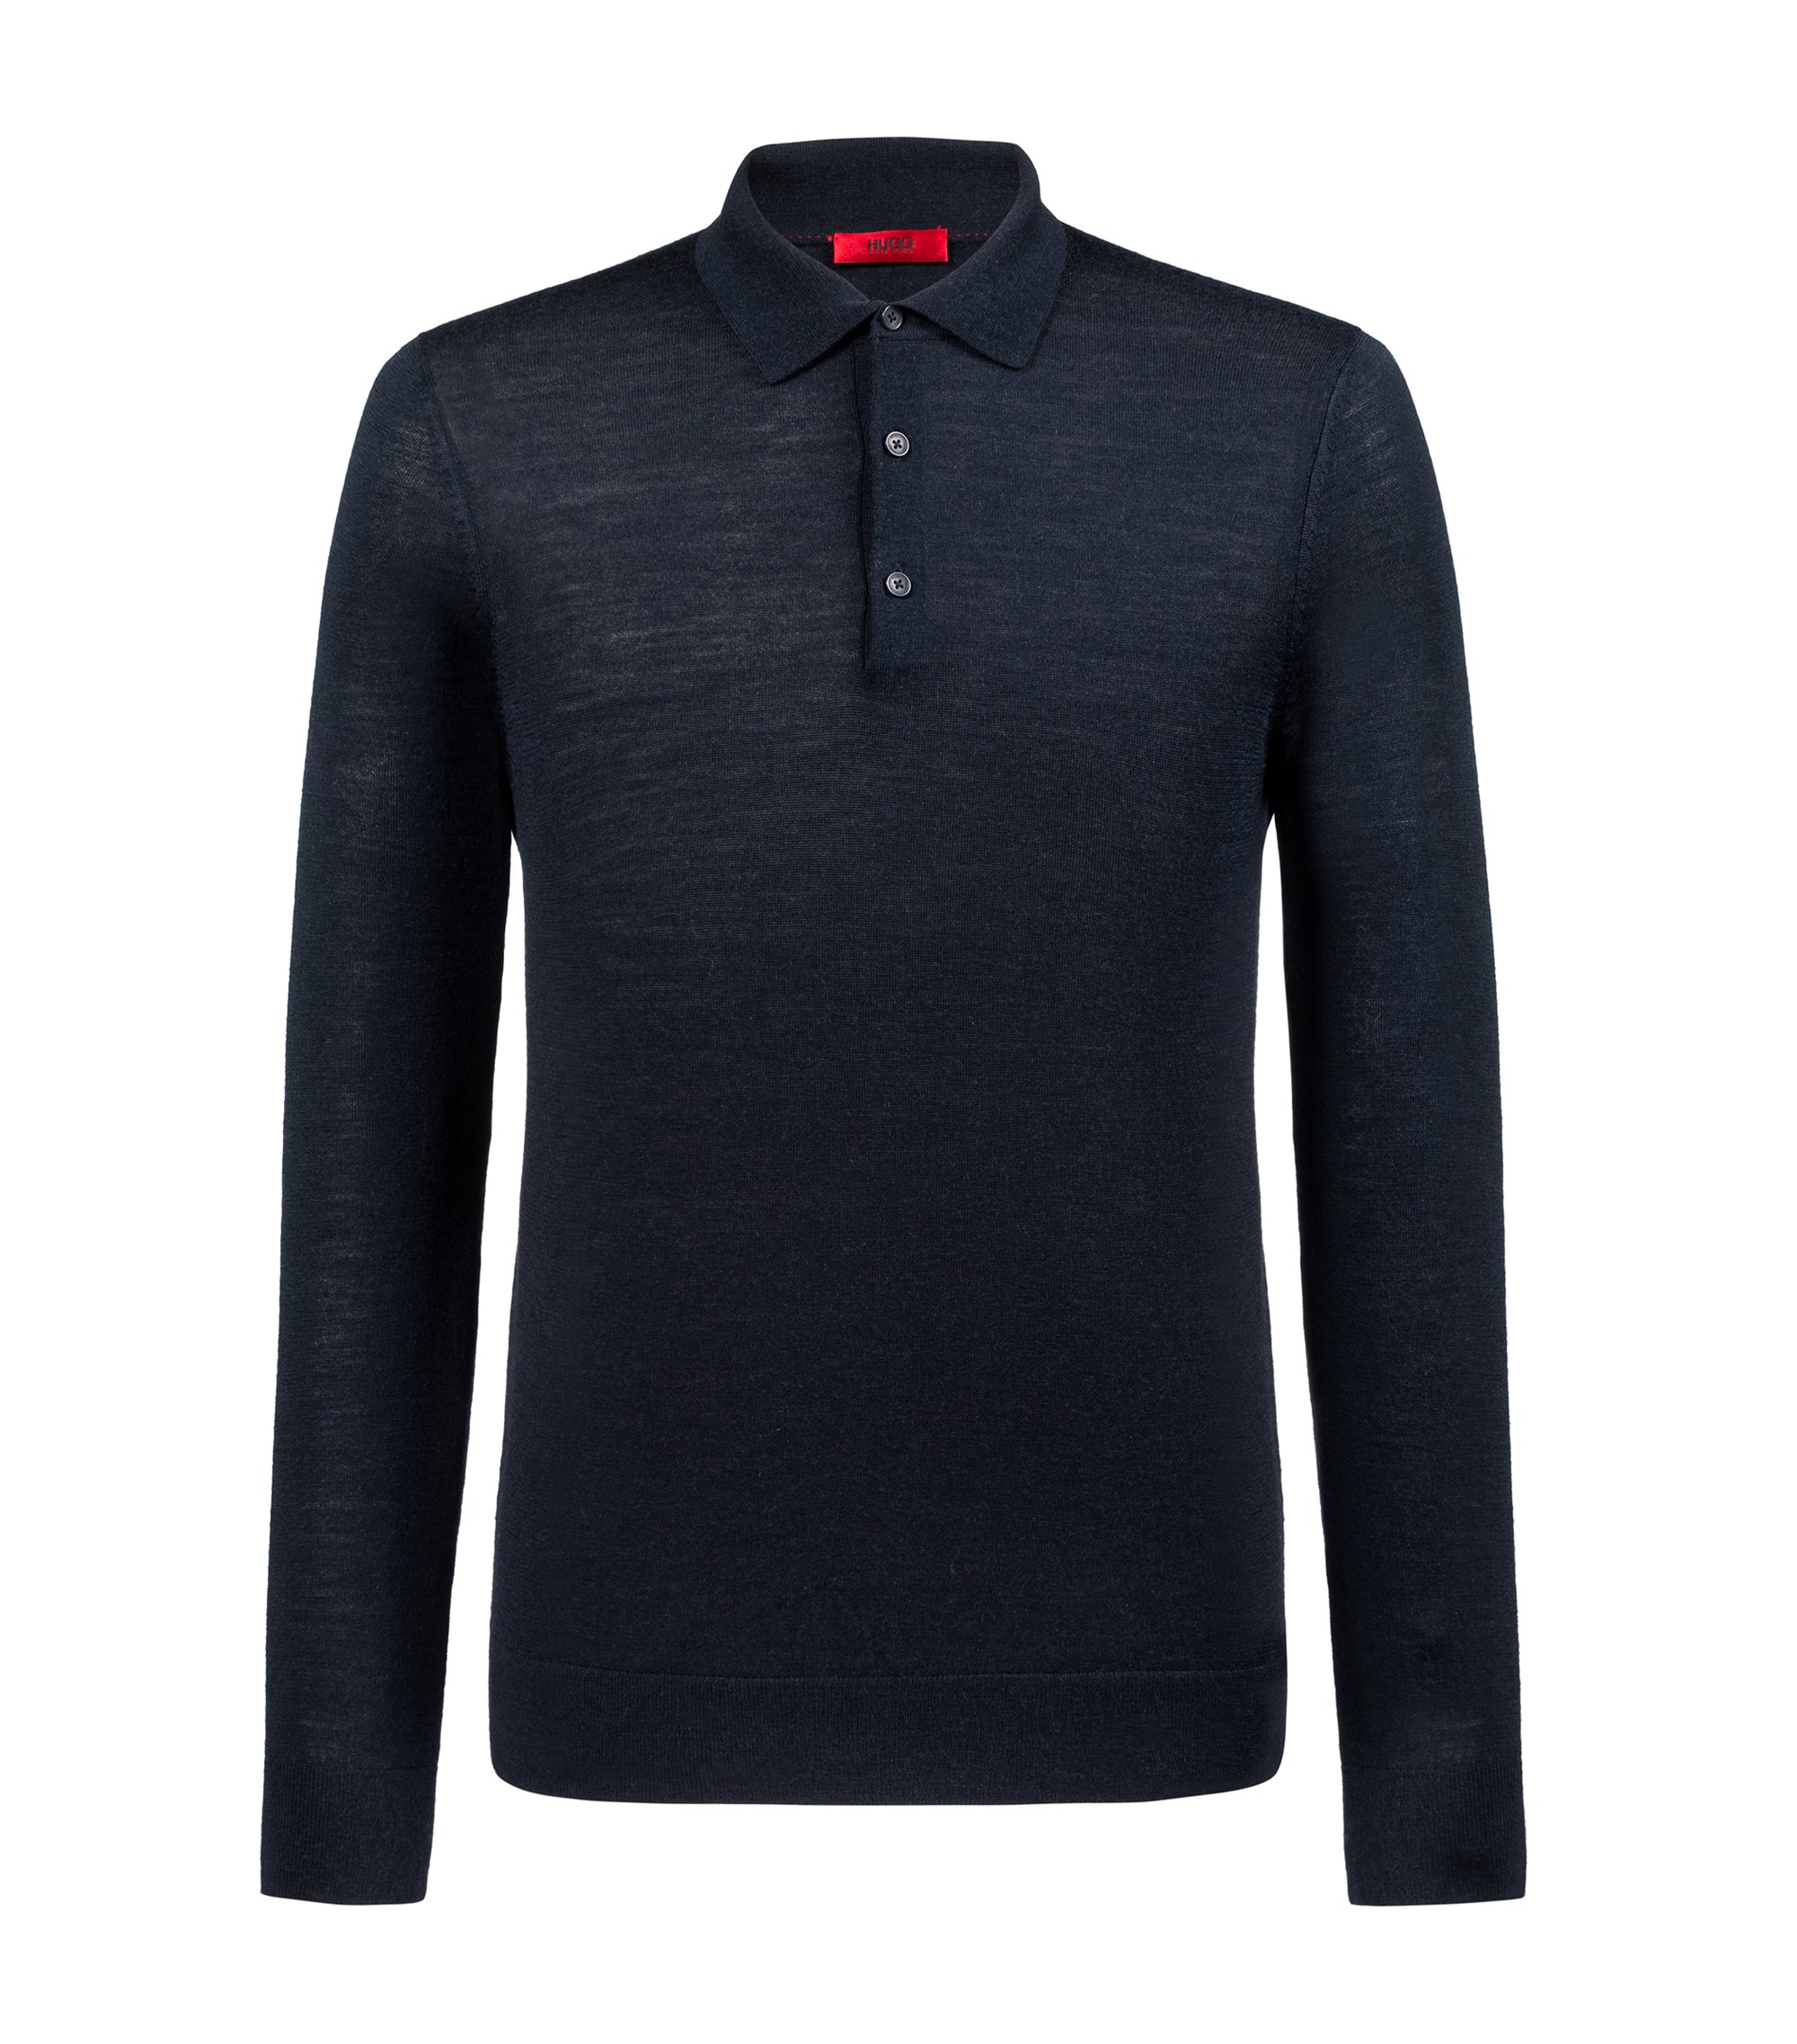 Maglione slim fit con collo a polo in misto lana merino, Blu scuro